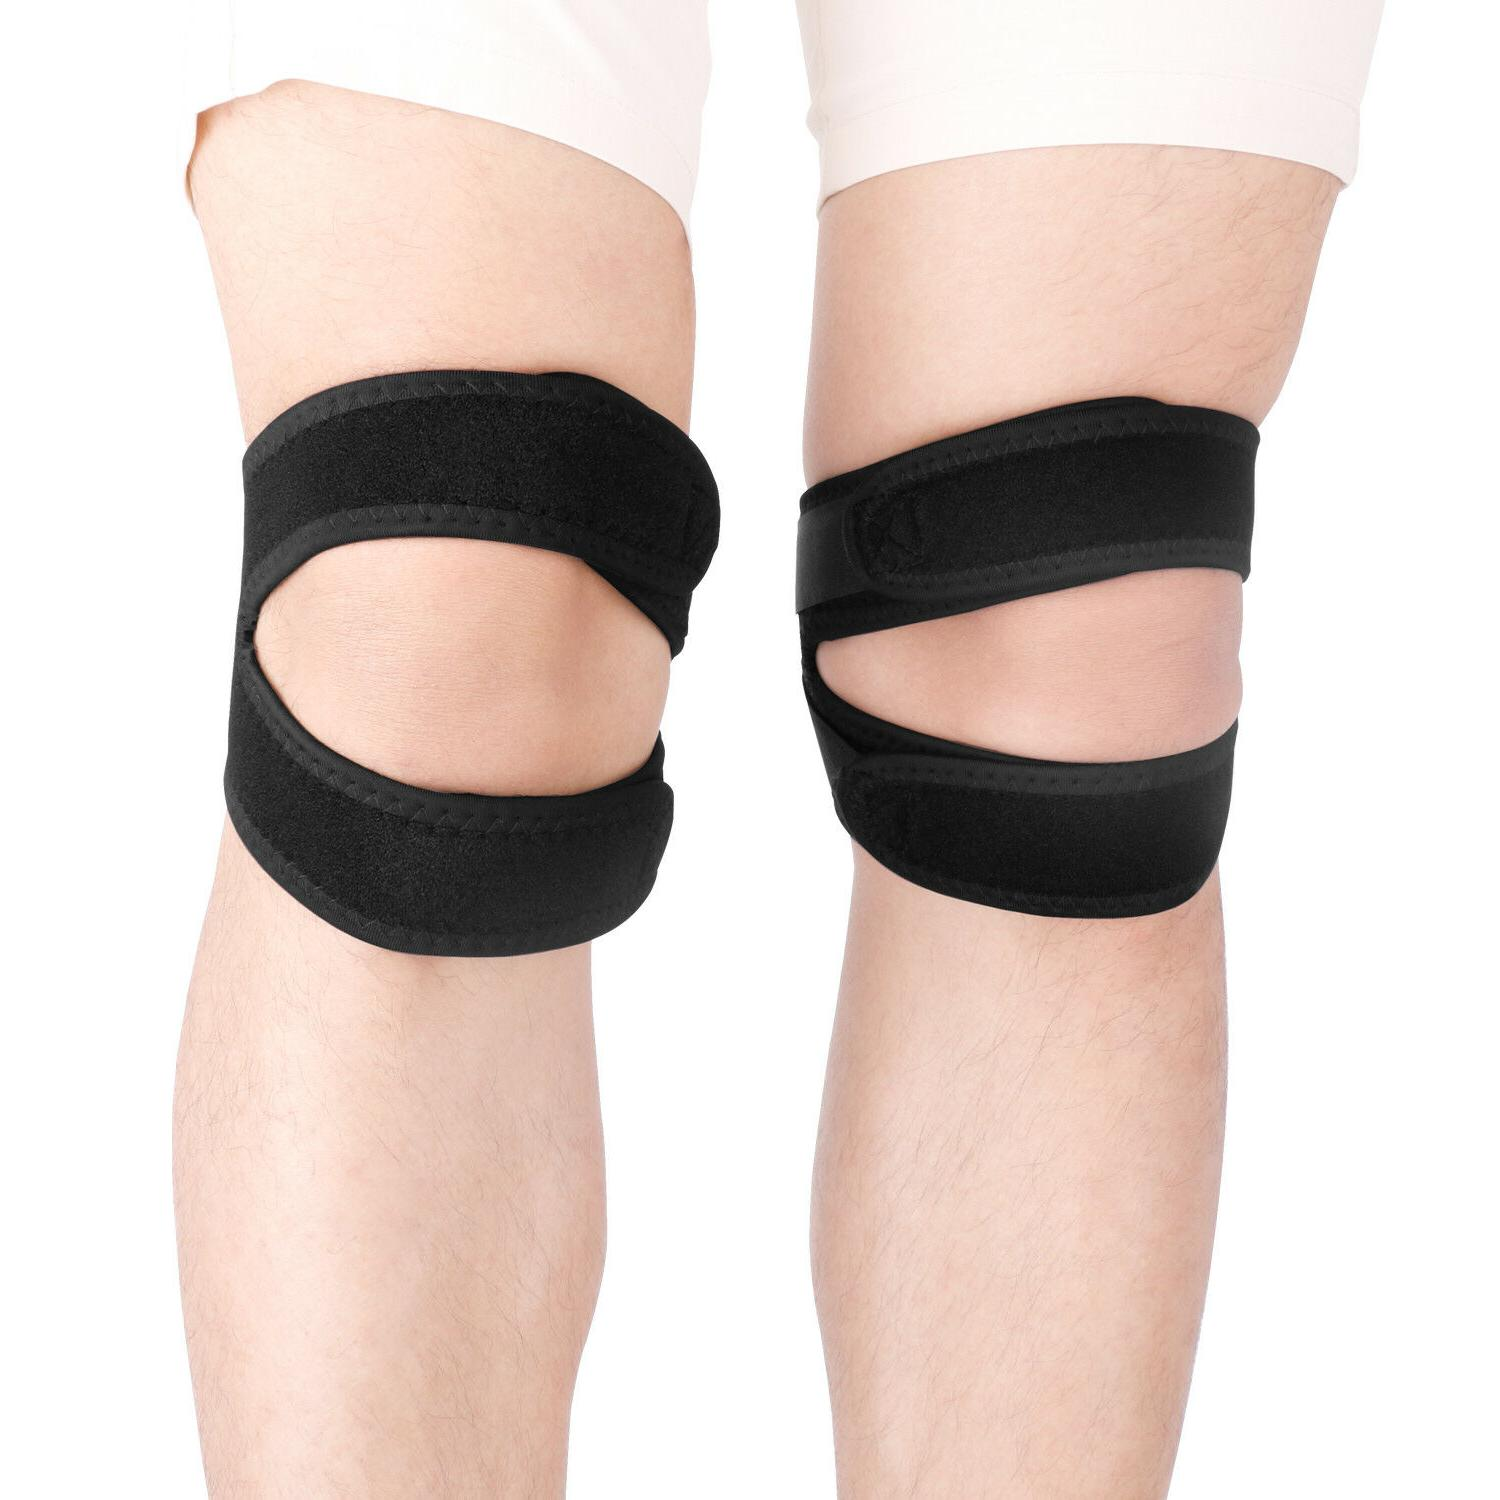 knee support protection patella double strap stabilizer